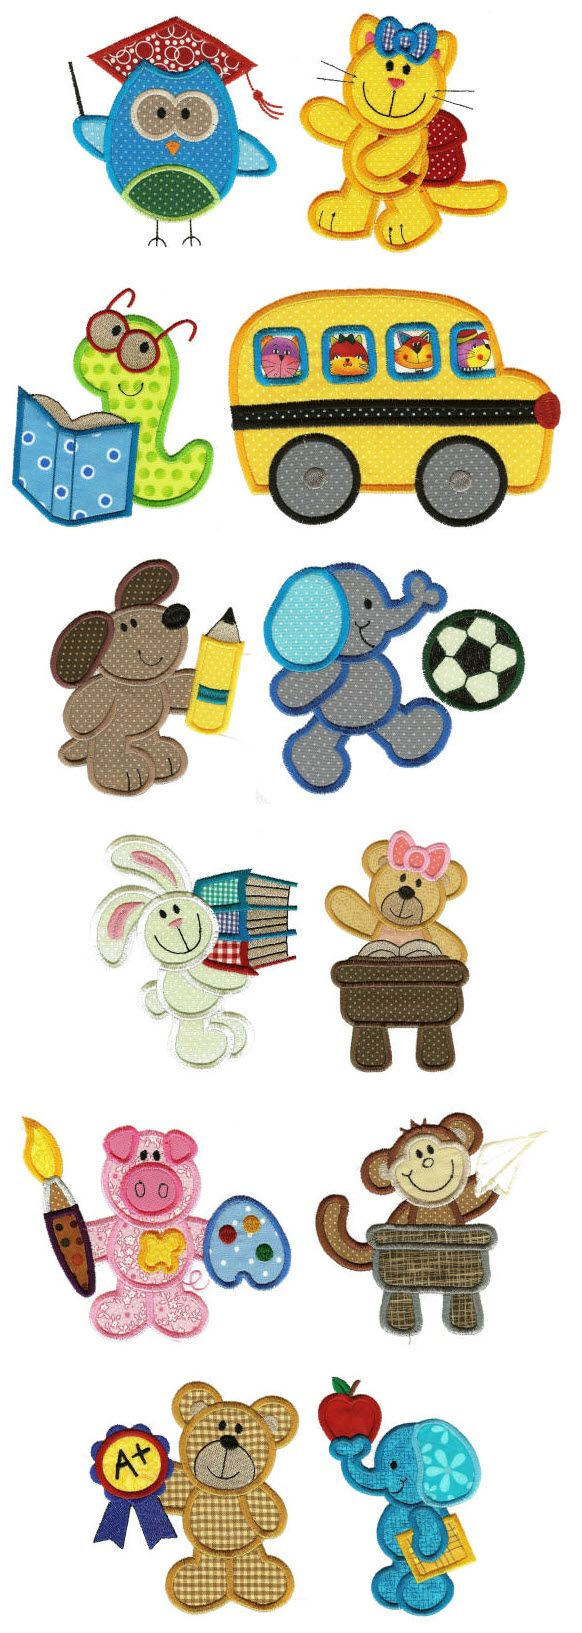 Embroidery Designs | Applique Embroidery Designs | Free Embroidery Designs | School Applique